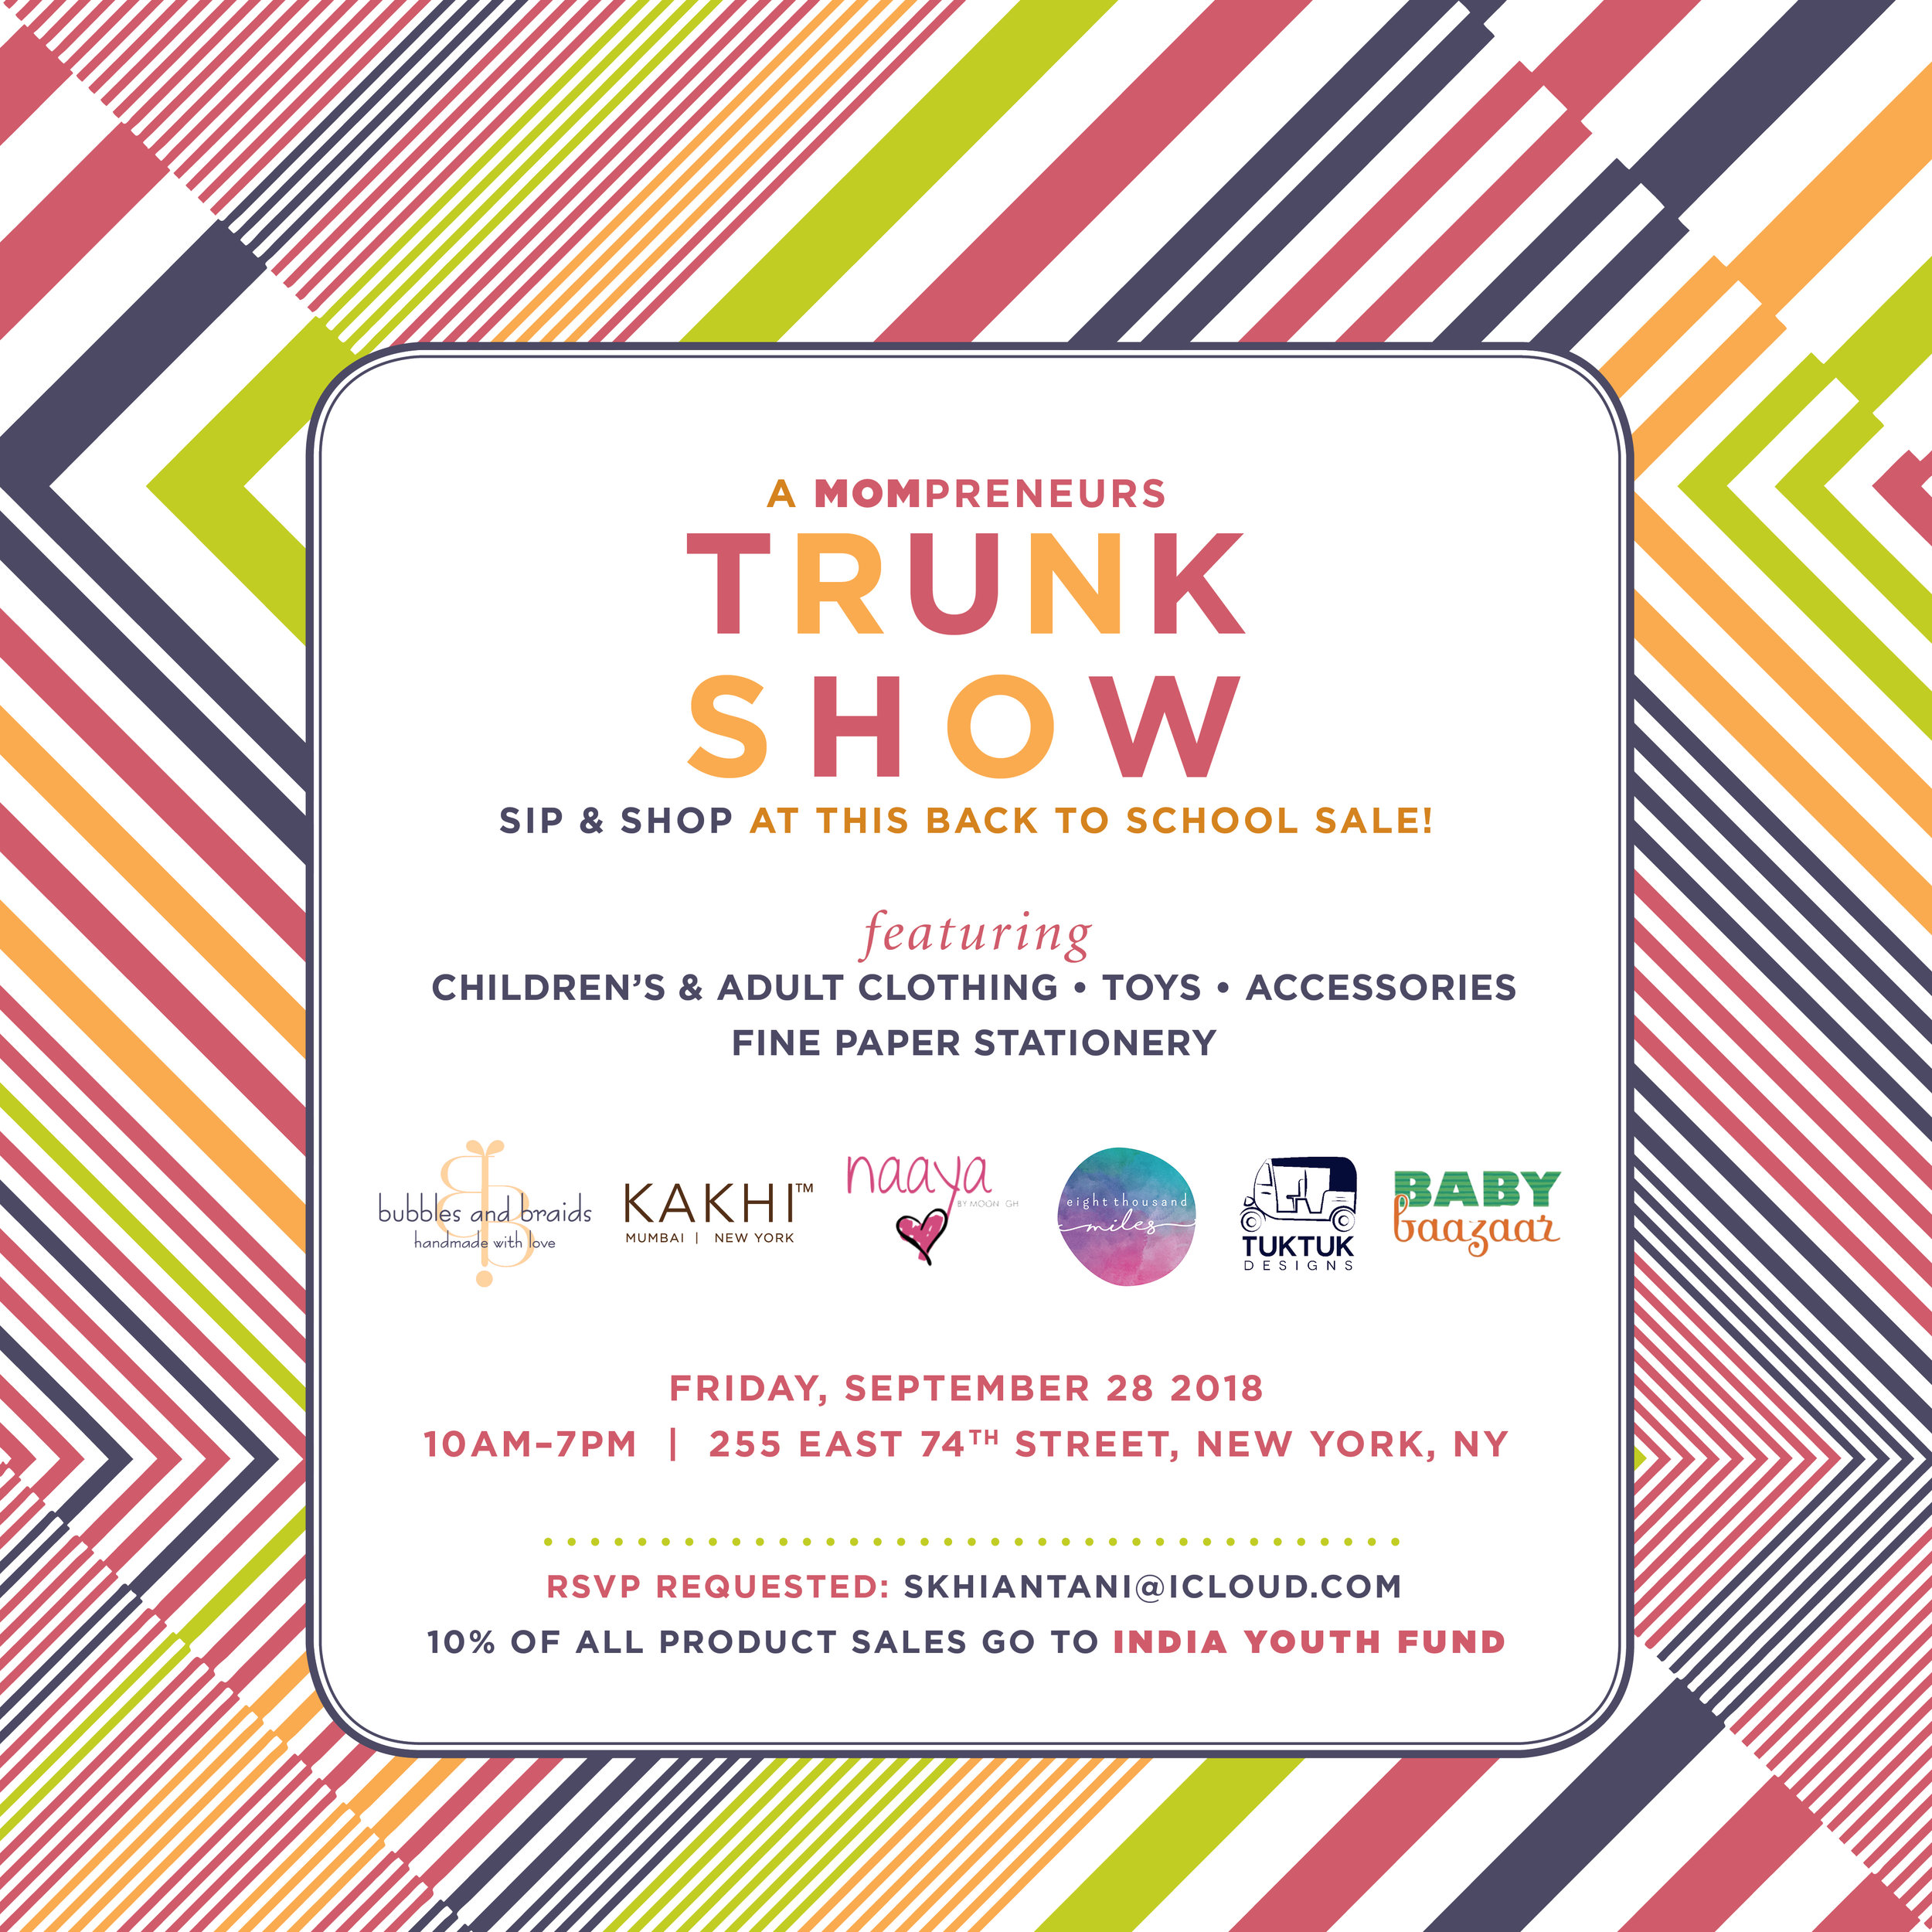 TrunkShow_NYC_Sept2018_Invite_2.jpg